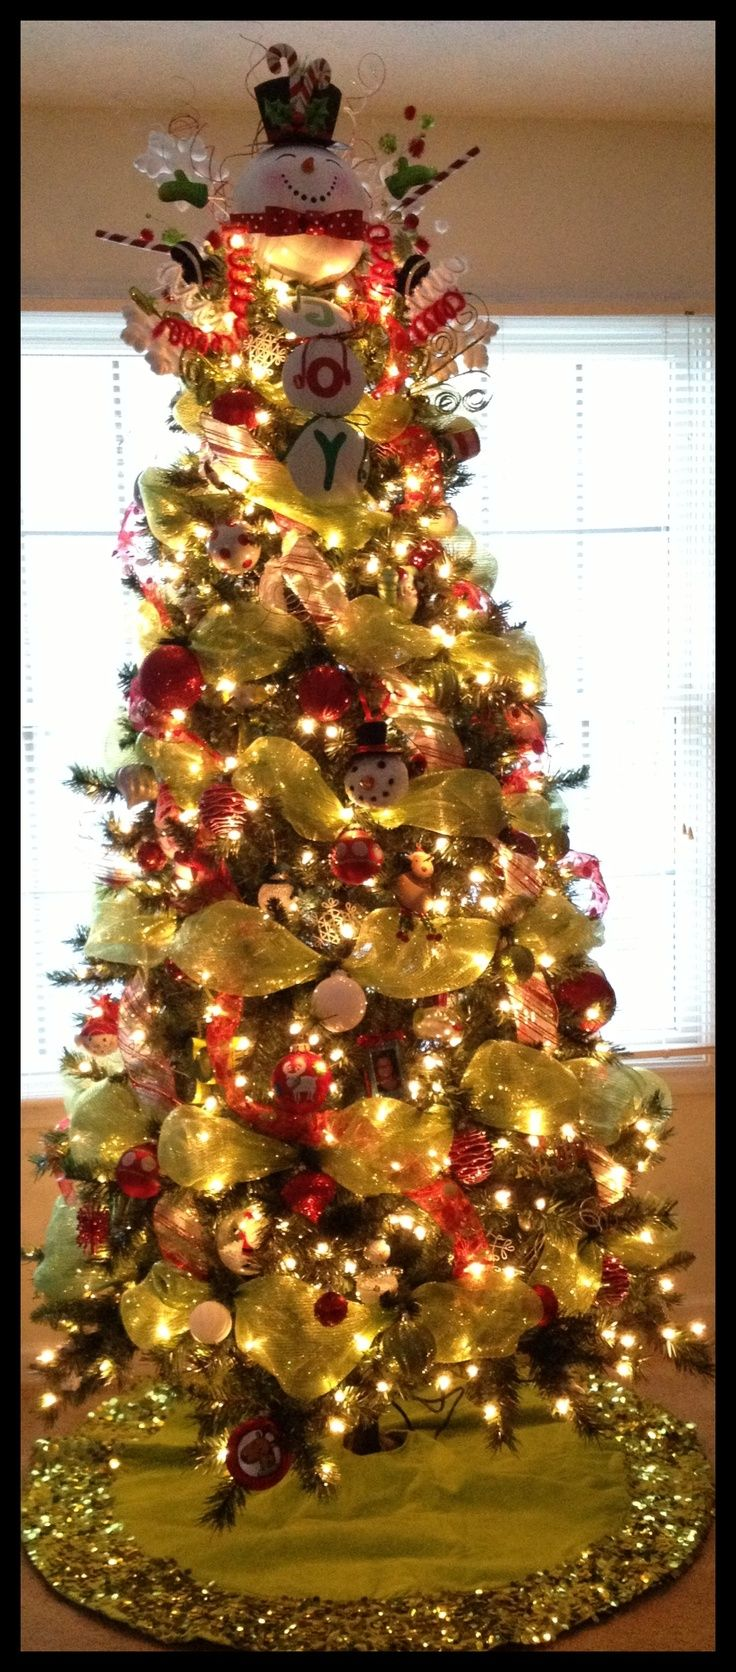 How To Decorate A Christmas Tree With Mesh Netting - Christmas trees decorated with mesh netting mesh ribbon and ornament decorated christmas